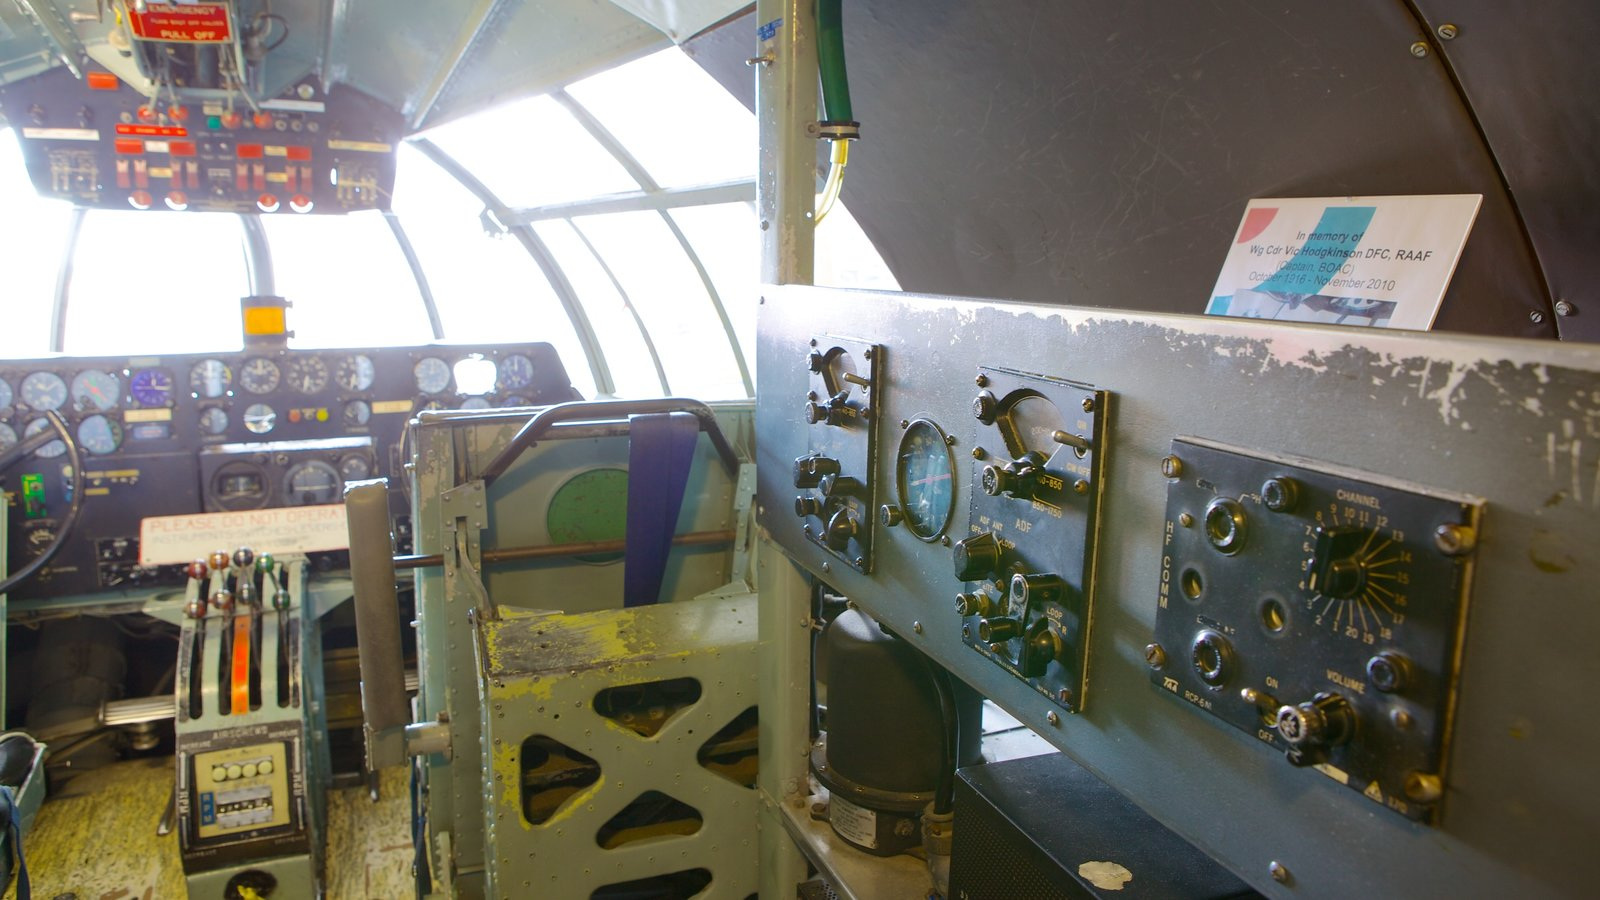 Solent Sky Museum which includes interior views and aircraft